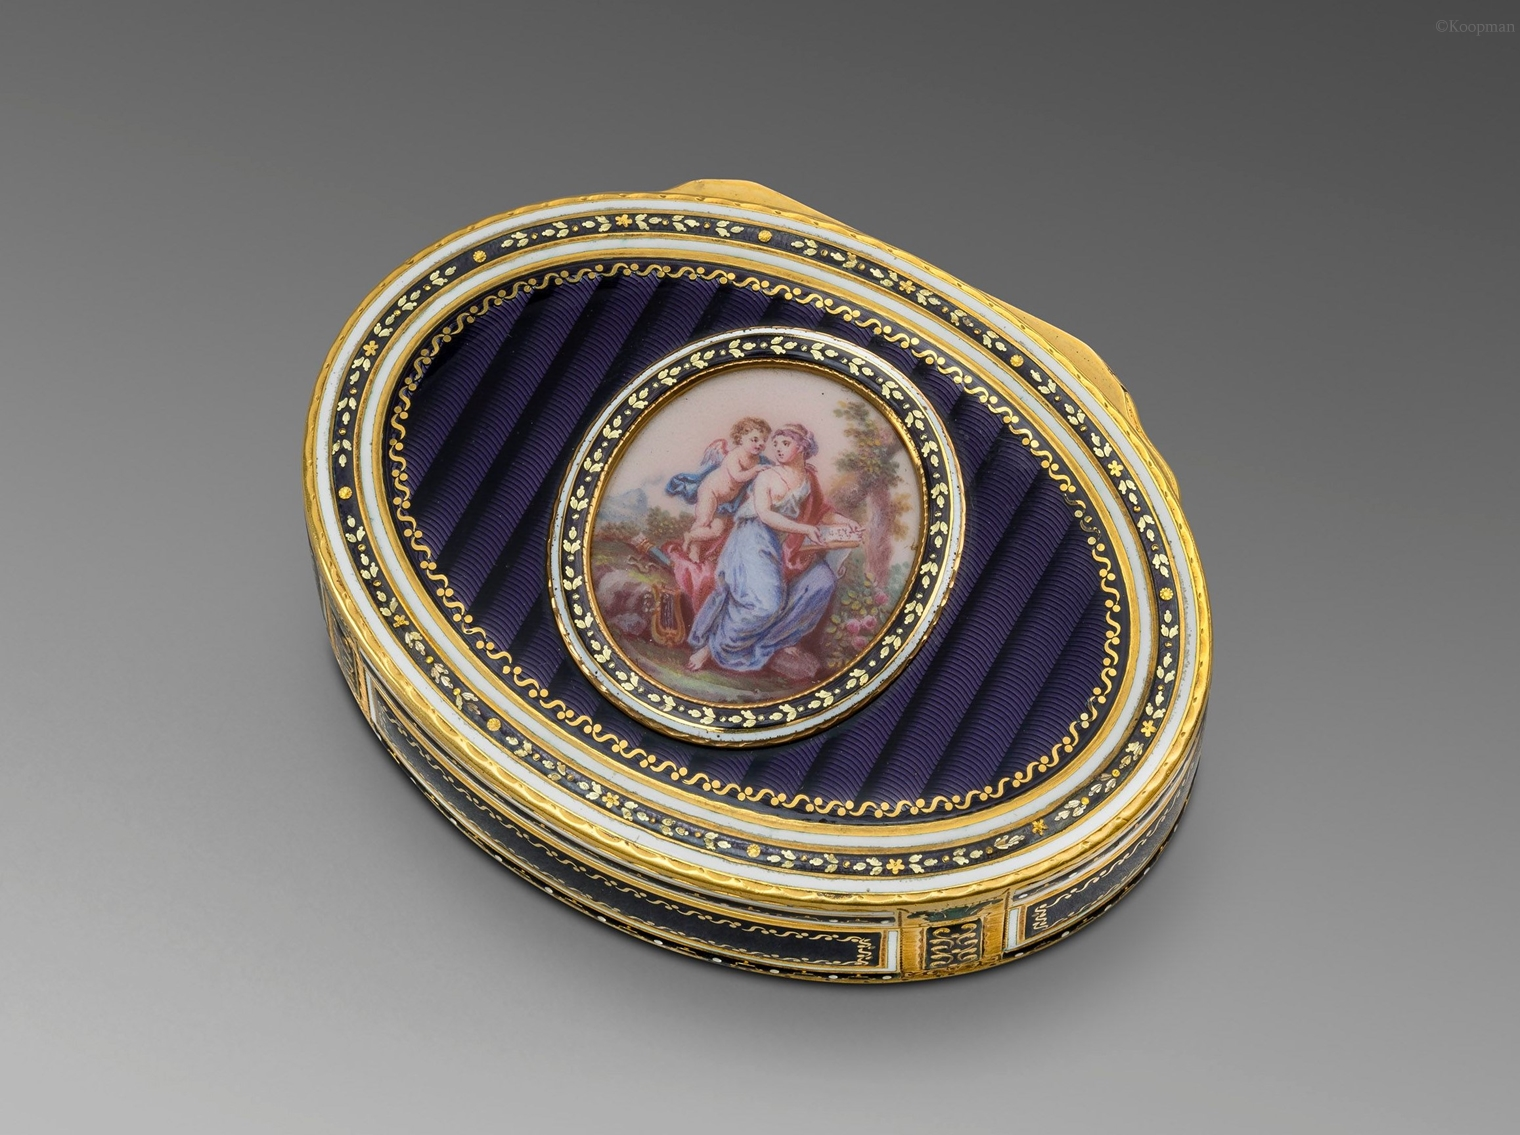 A German Gold and Enamel Box